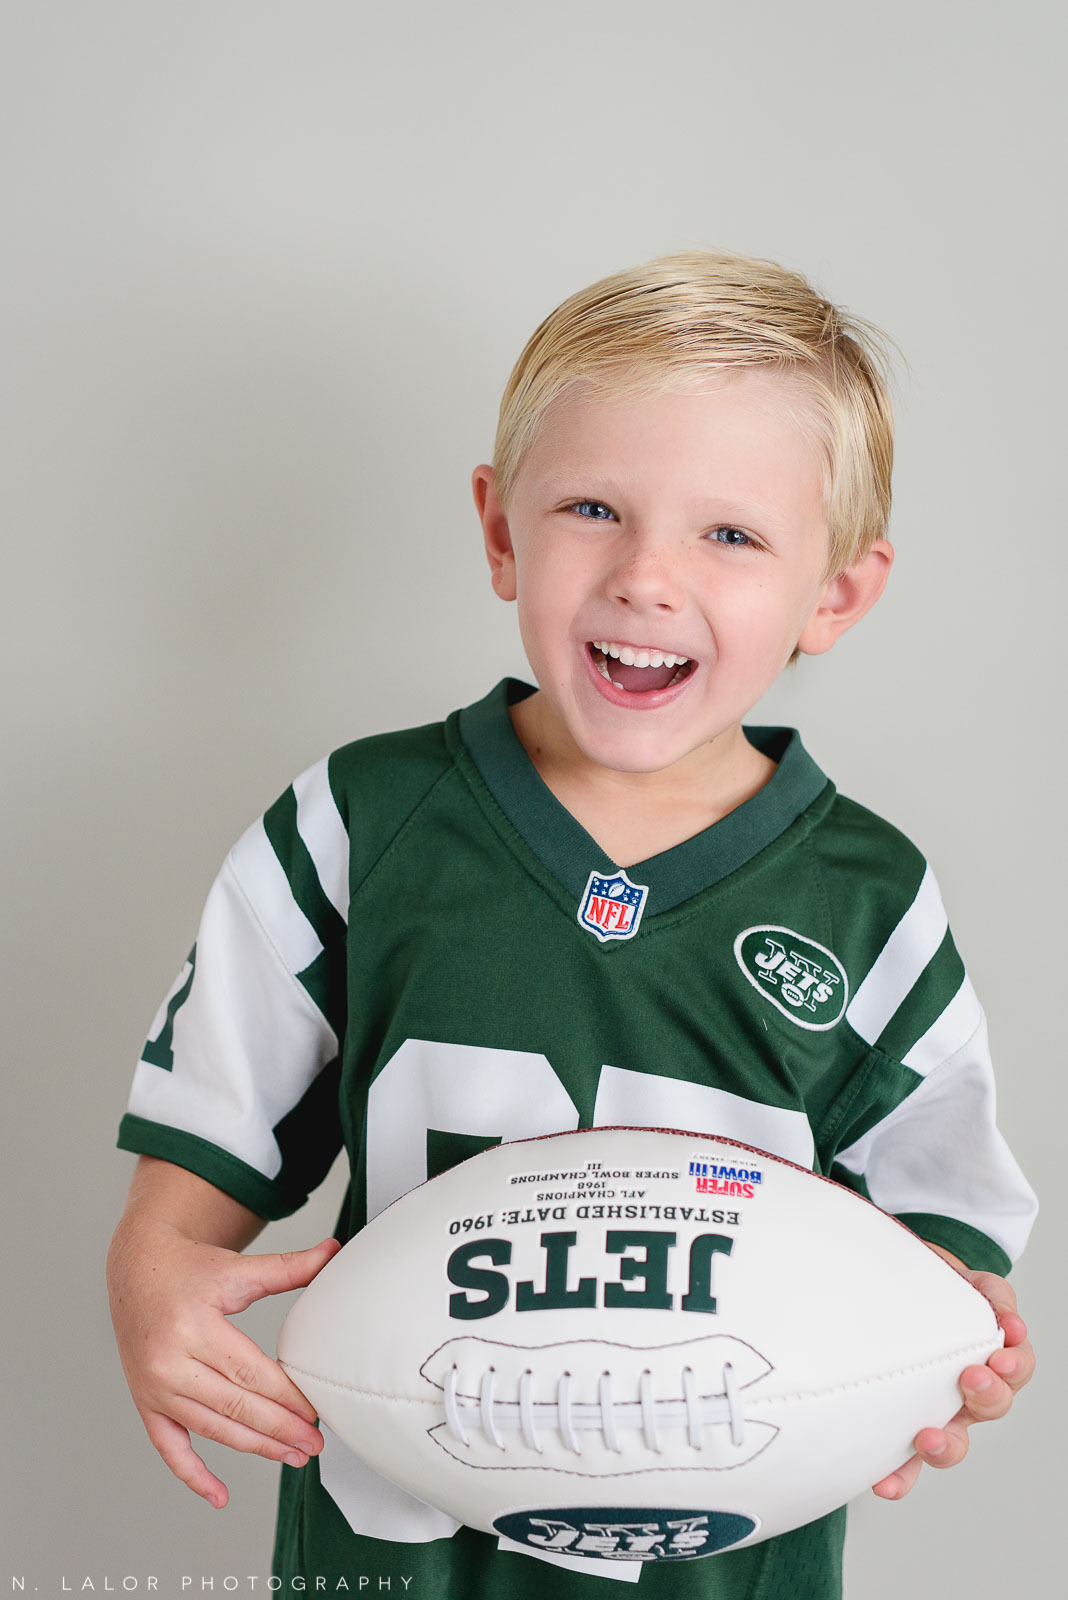 Jets and football. Studio photoshoot with N. Lalor Photography in Greenwich, Connecticut.